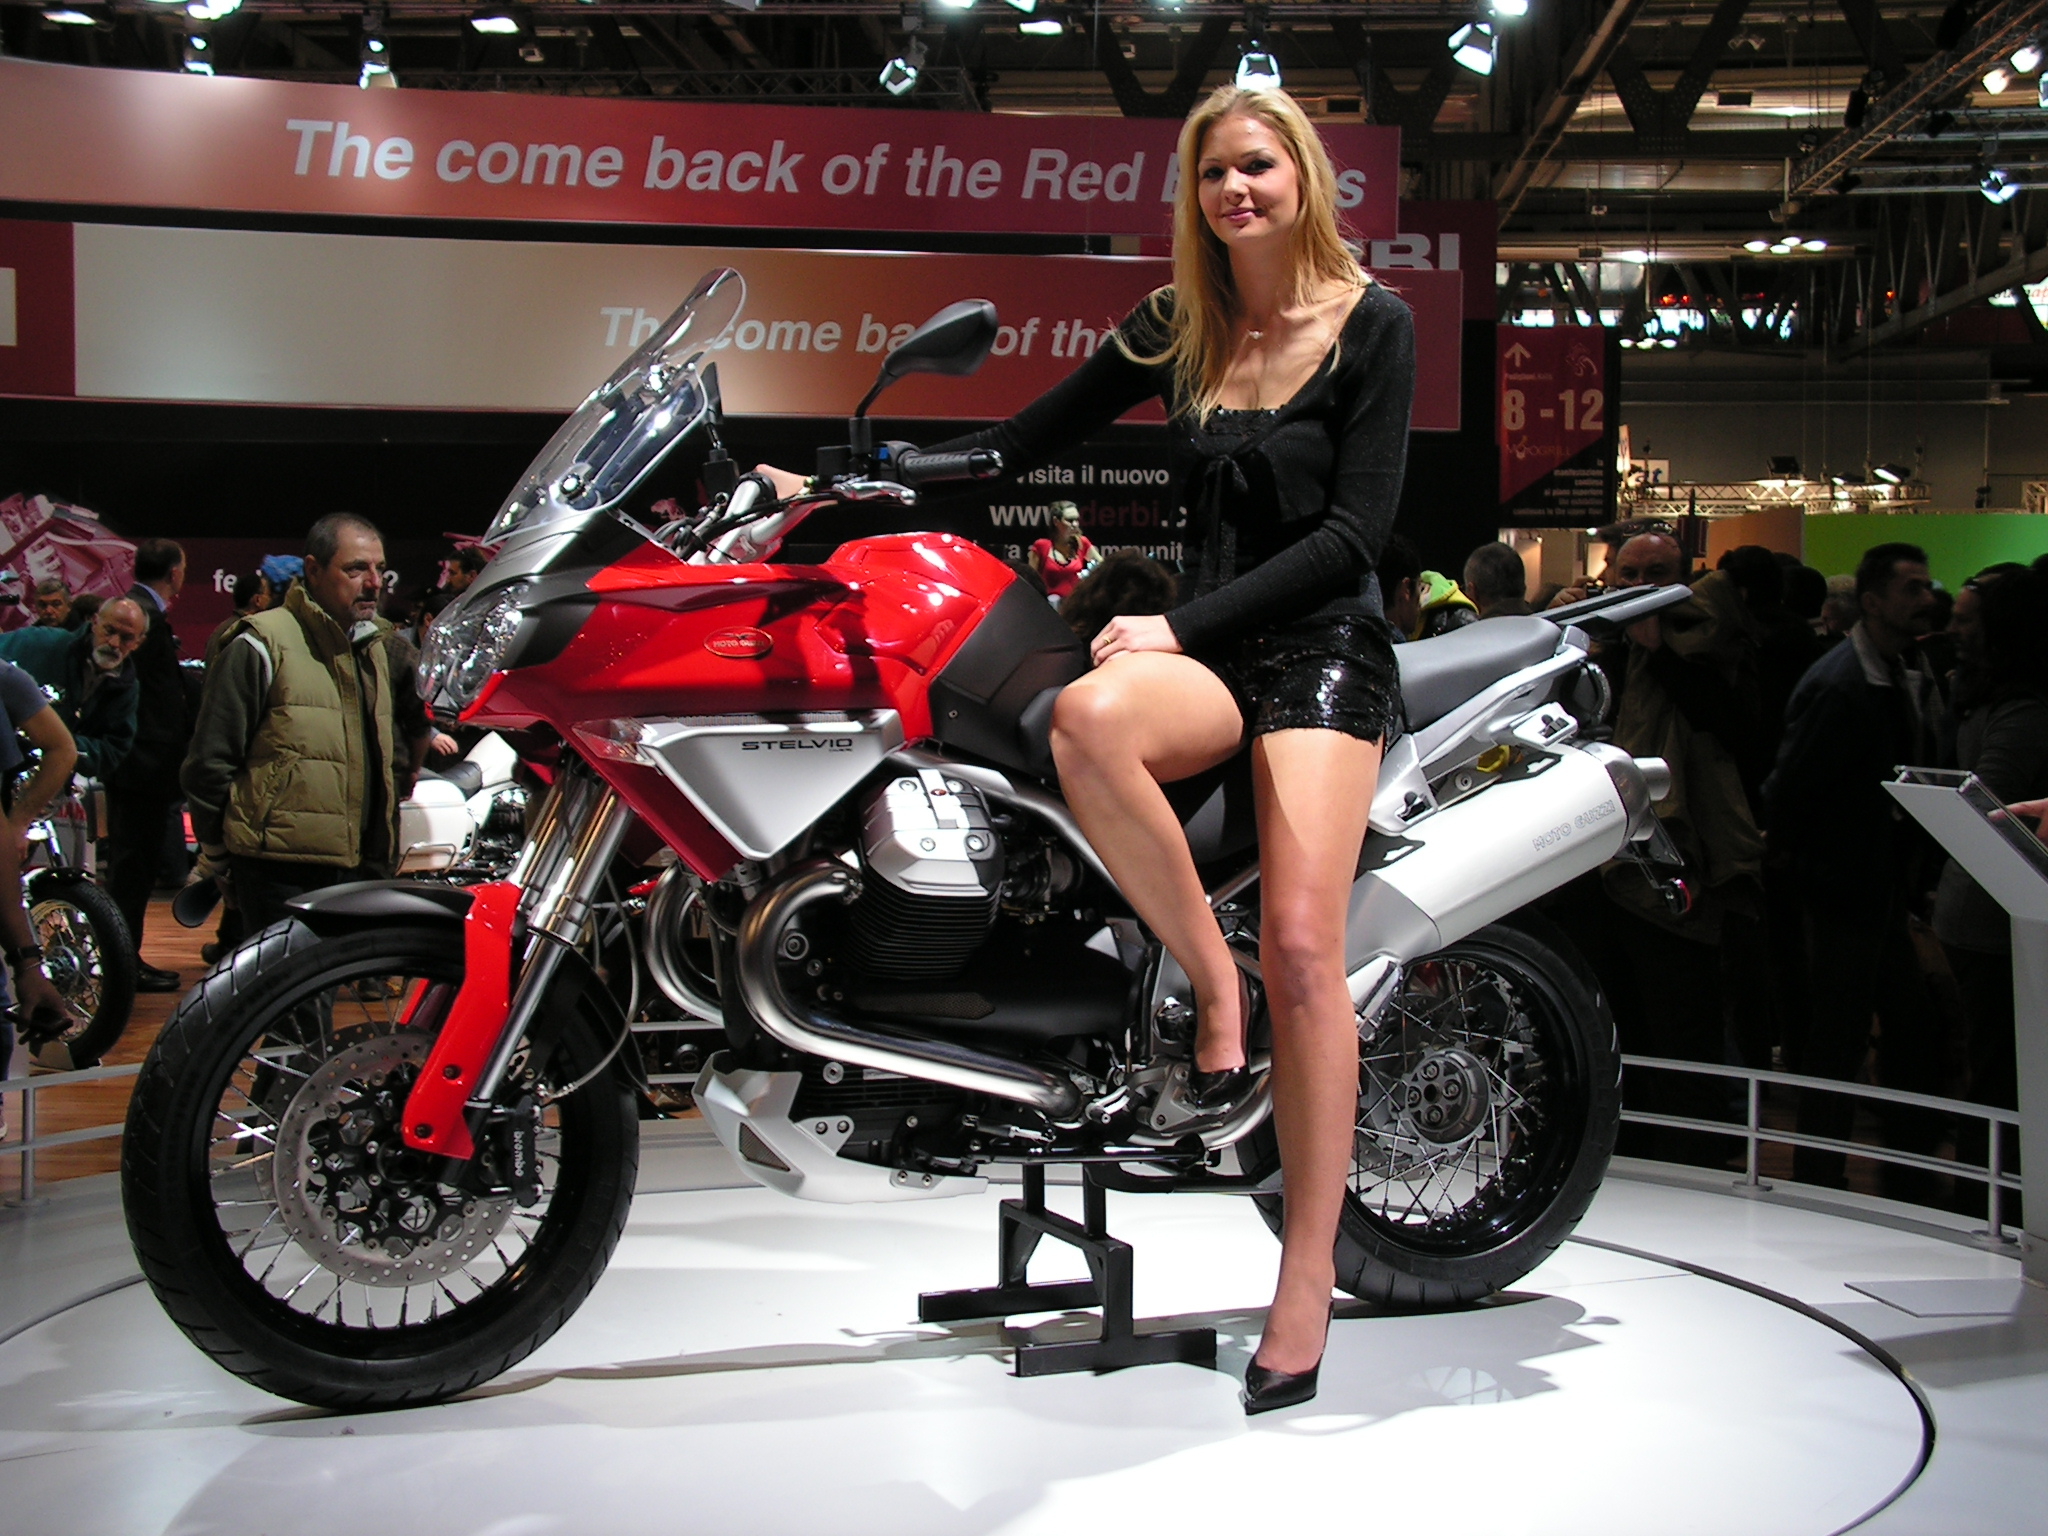 Moto guzzi stelvio photo - 1